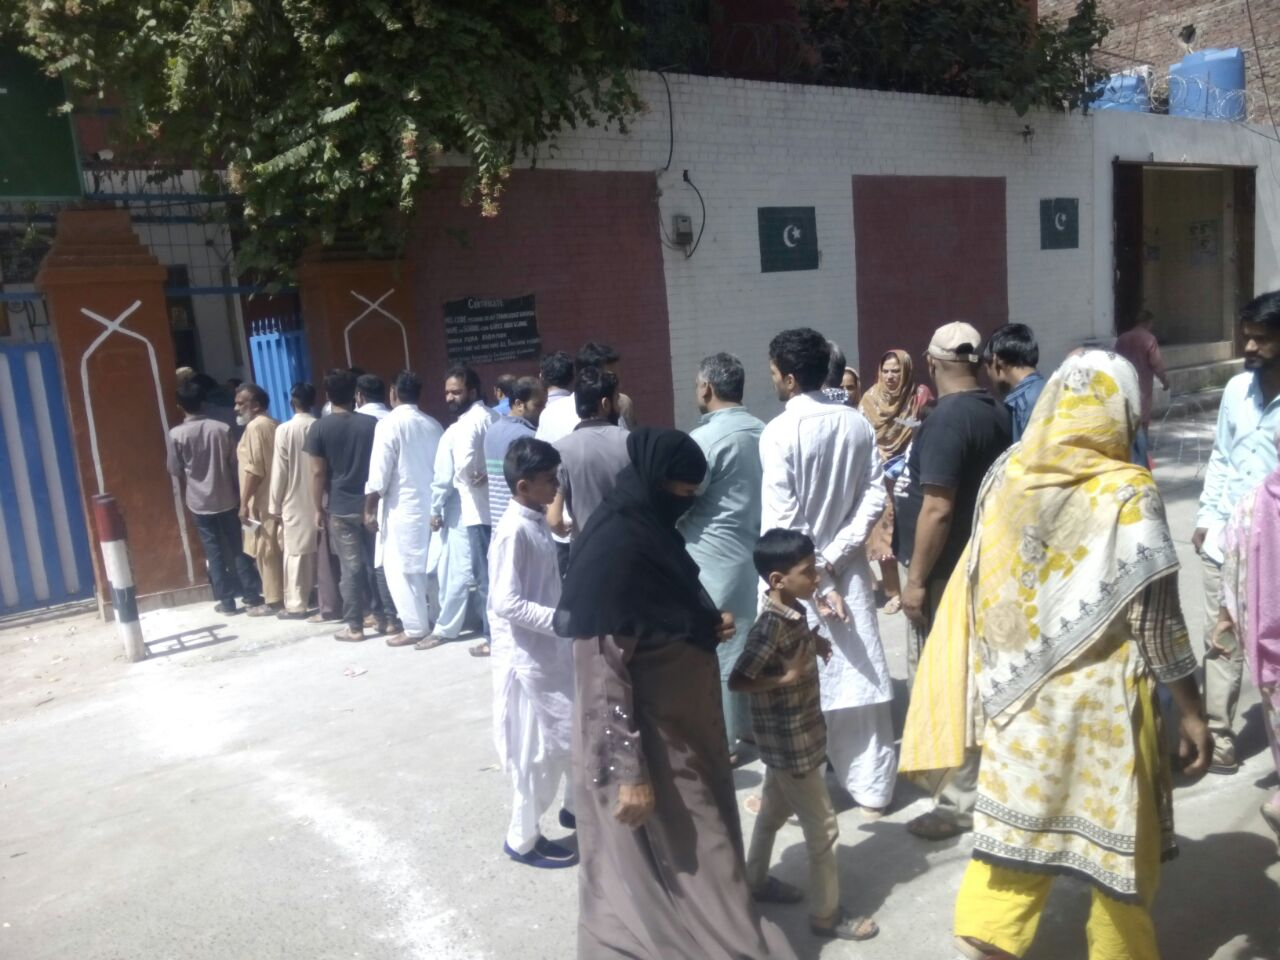 Voters in que outside a polling station. Photo: Geo News